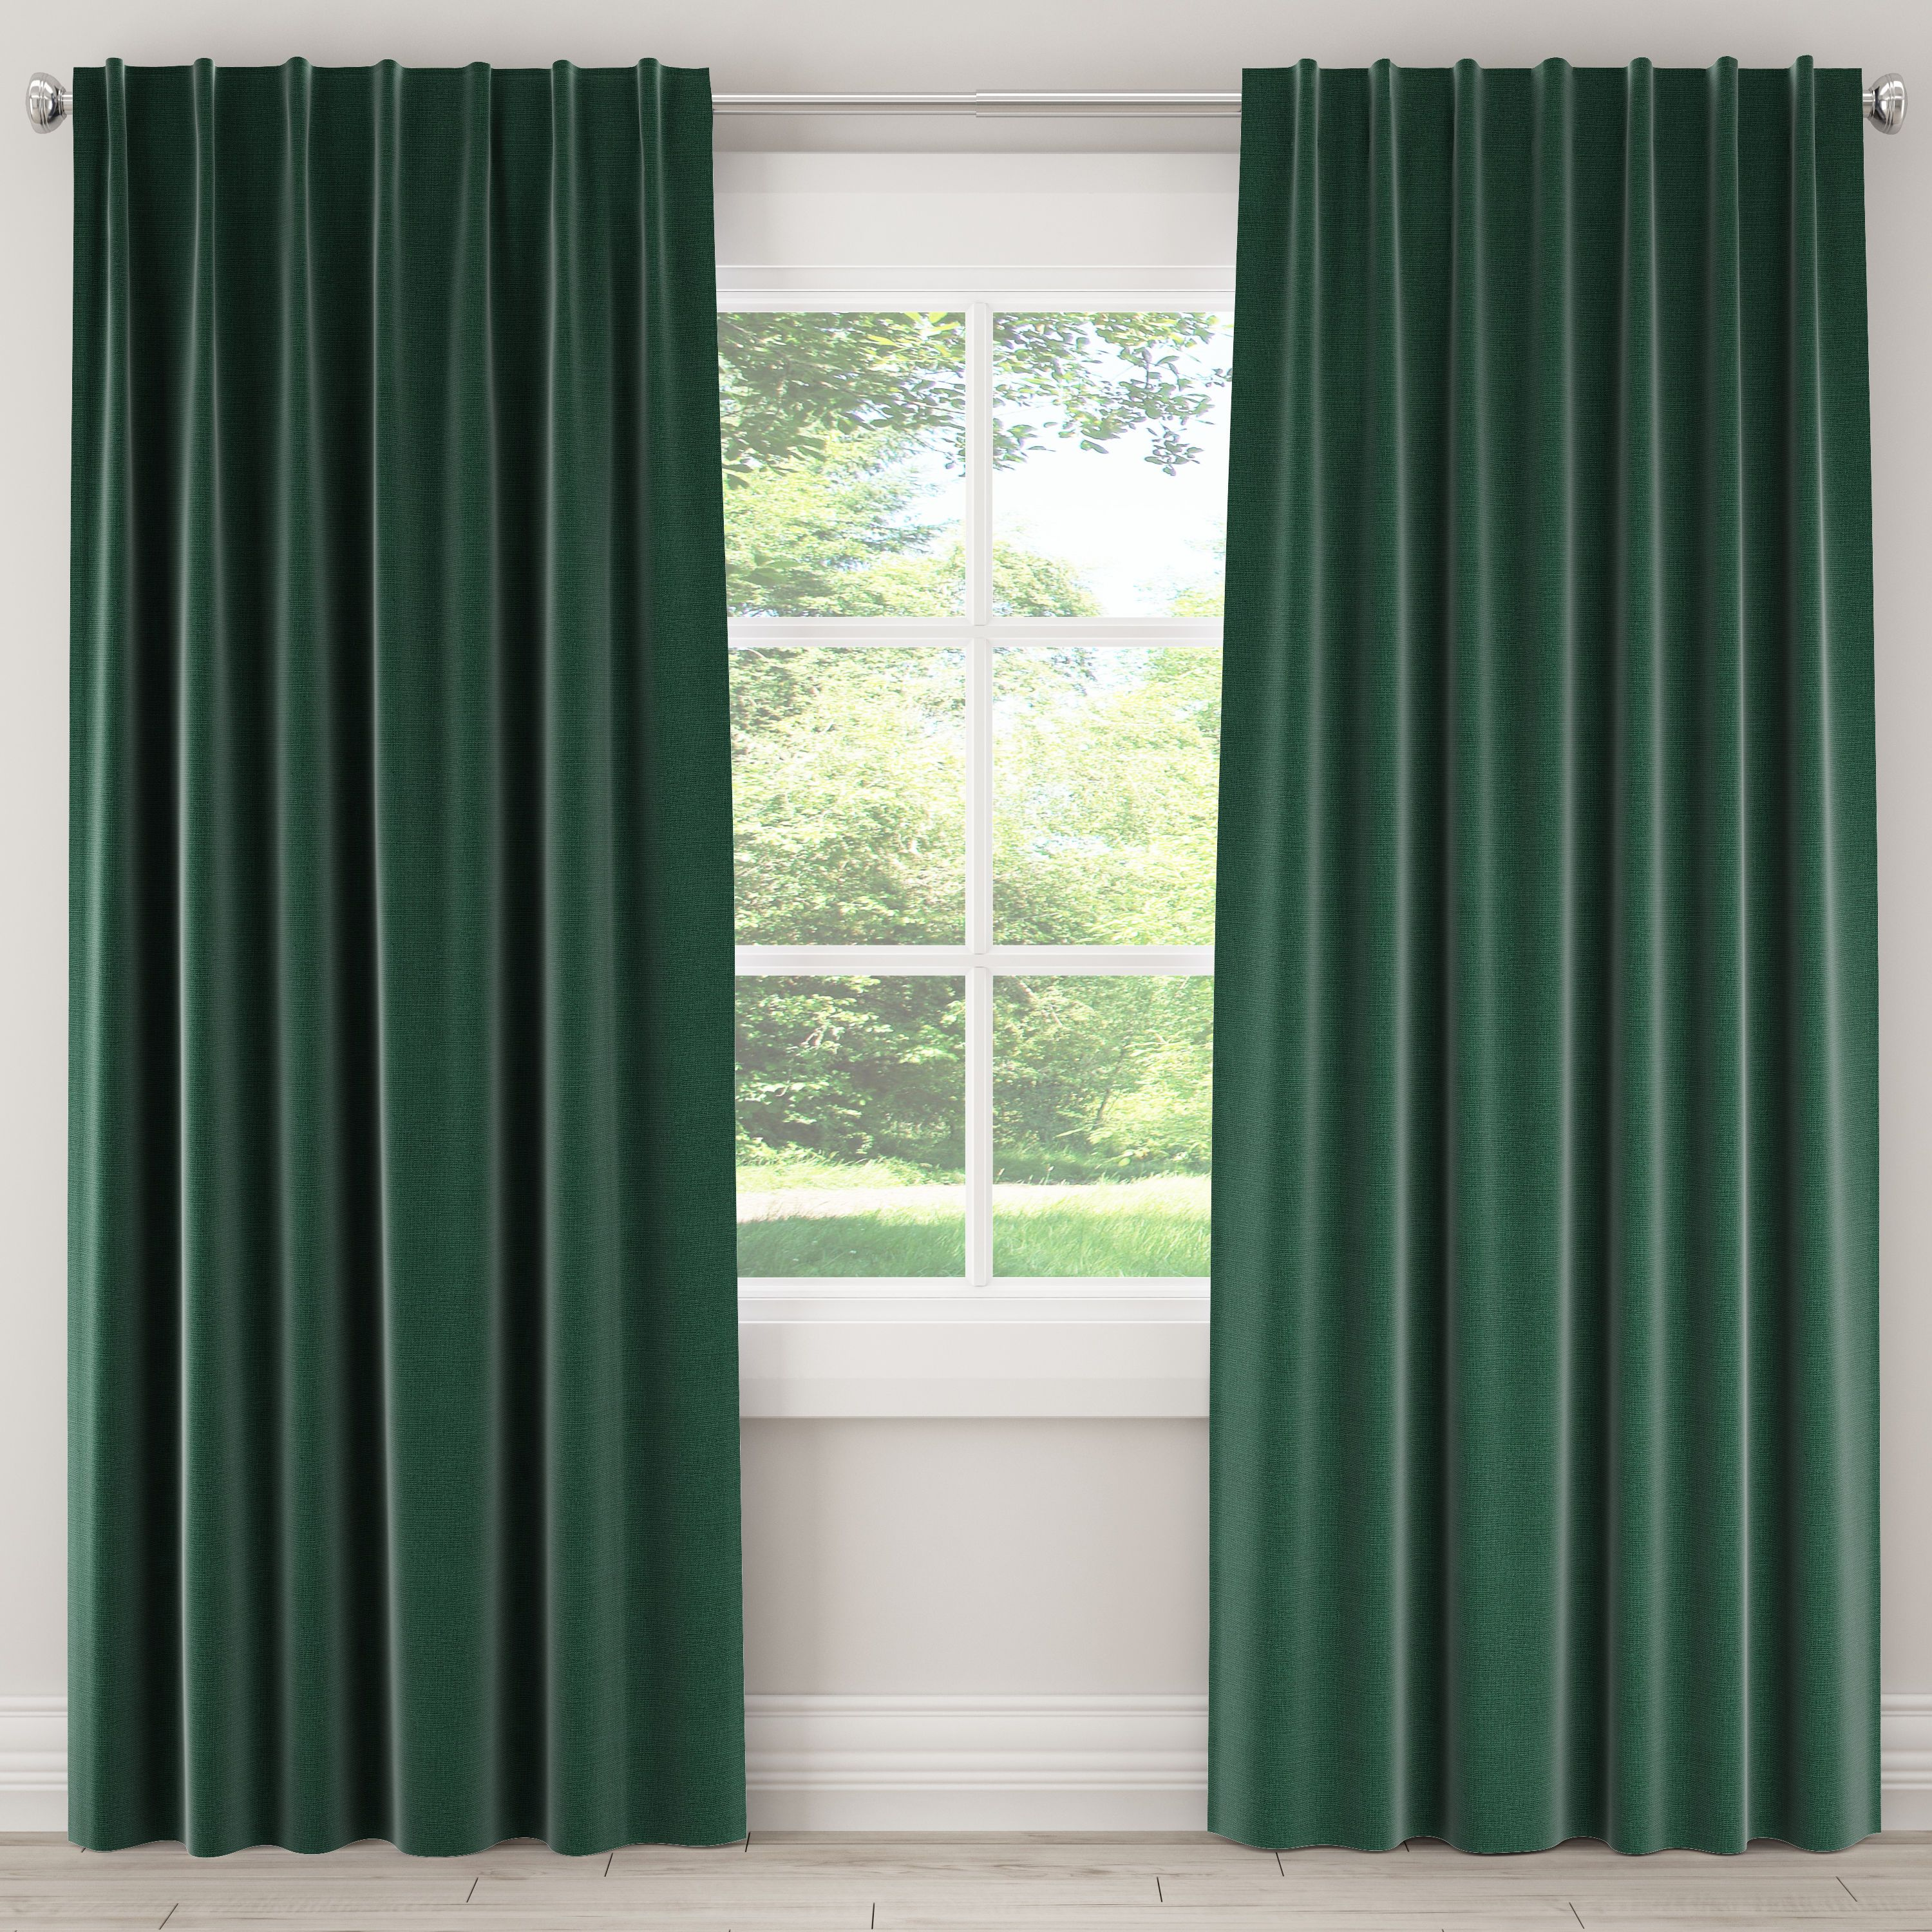 This Is One Window Covering You Can T Live Without A Pretty Pop Color Curtain Panel Adds Gorgeous Tex In 2020 Skyline Furniture Linen Blackout Curtains Green Curtains